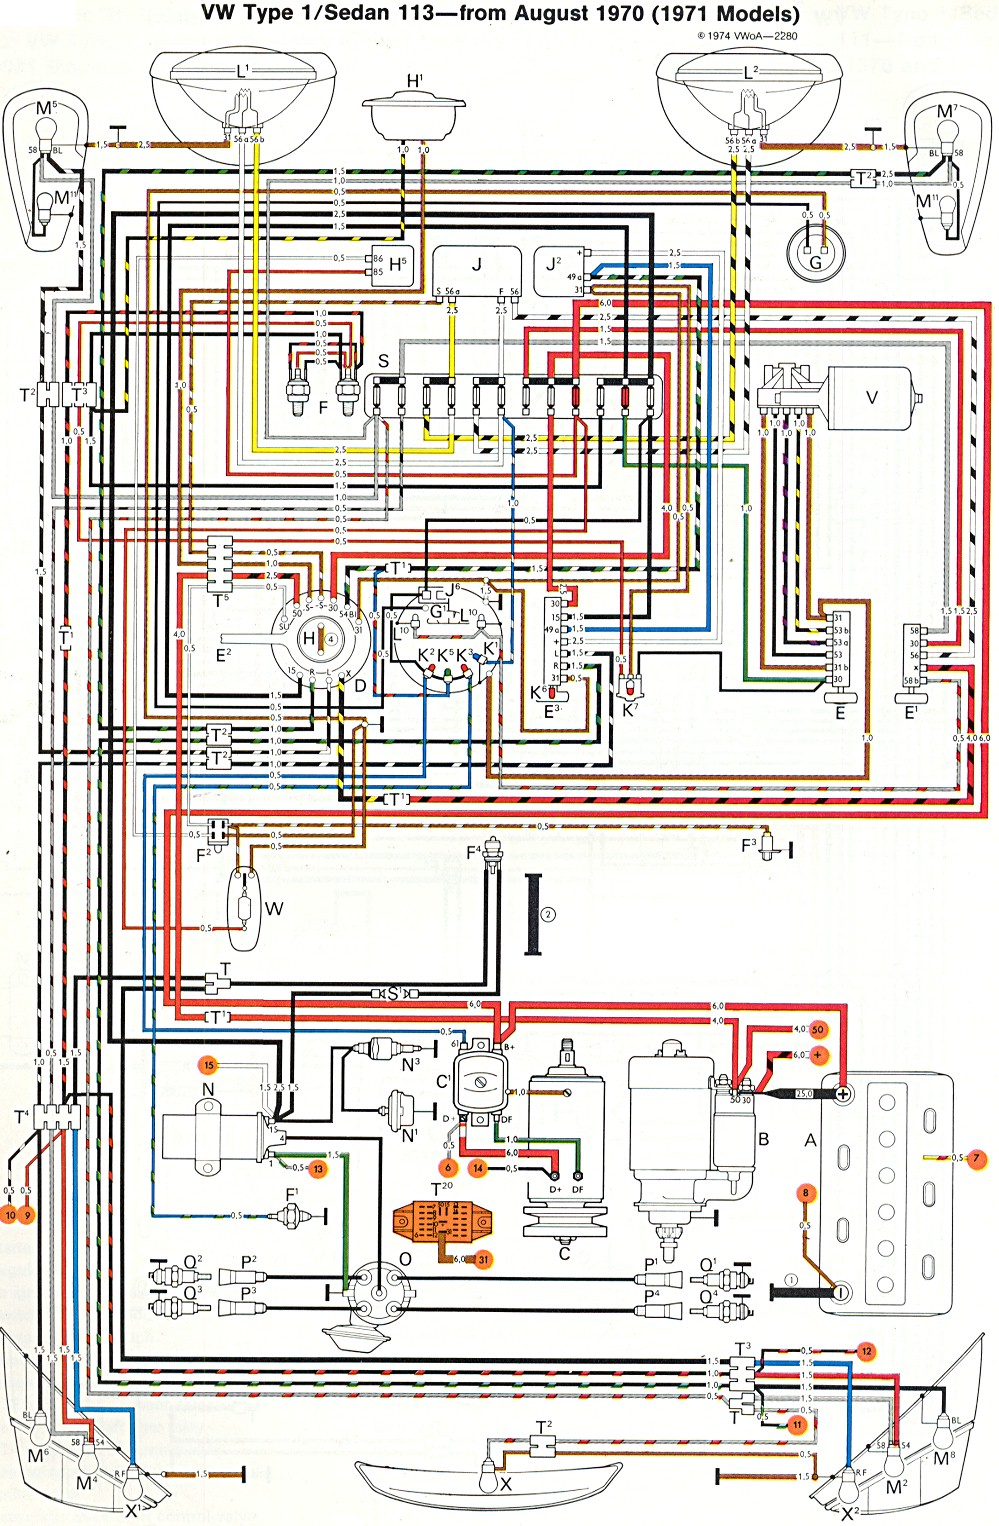 bug_super_71 1971 super beetle wiring diagram thegoldenbug com vw beetle wiring harness at readyjetset.co